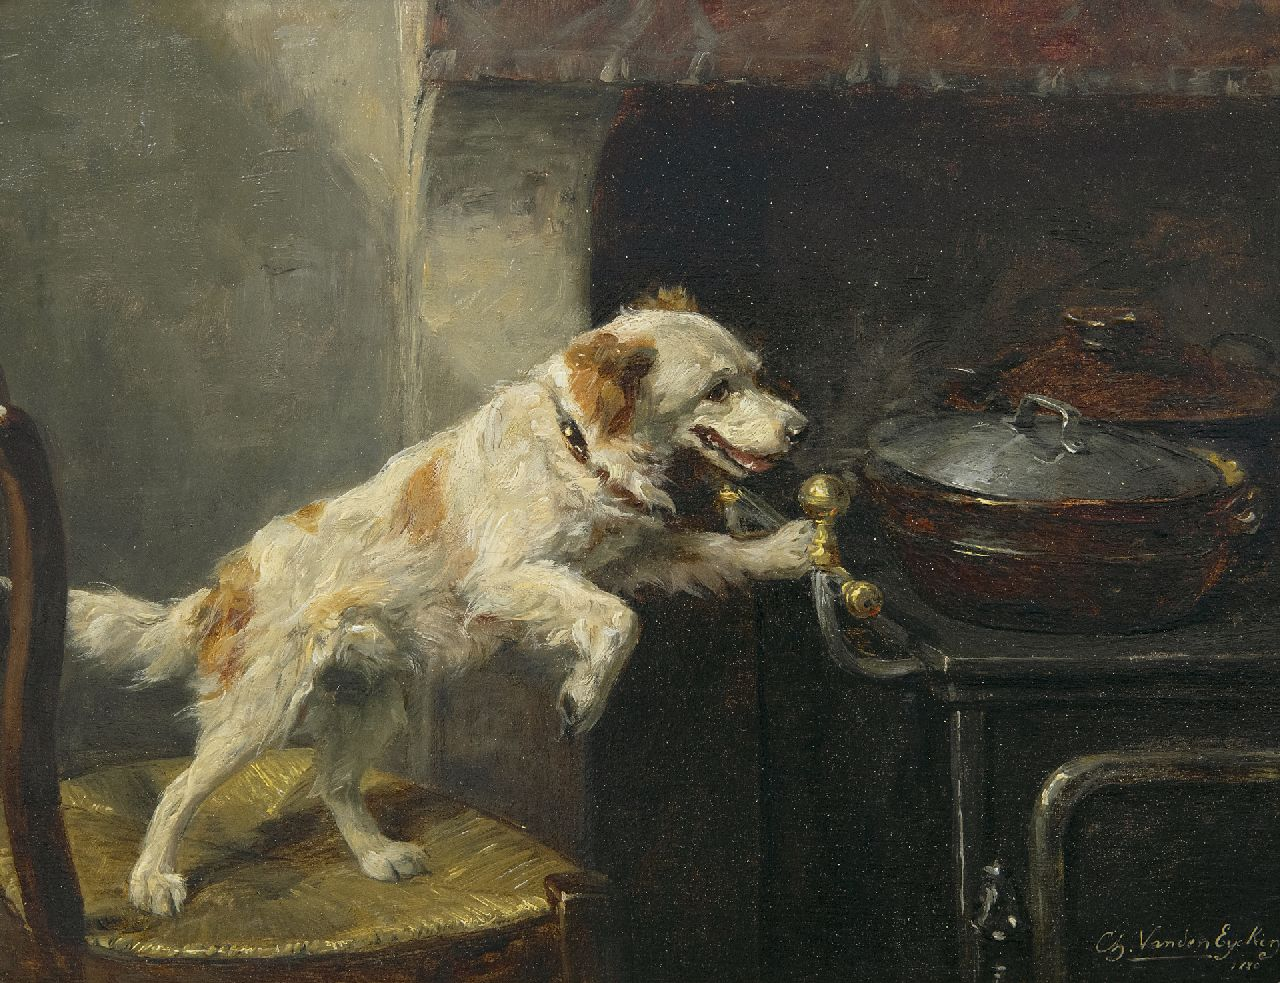 Eycken Ch. van den | Charles van den Eycken | Paintings offered for sale | Alone in the kitchen, oil on panel 21.4 x 27.8 cm, signed l.r. and dated 1880 and on the reverse 6.3.80